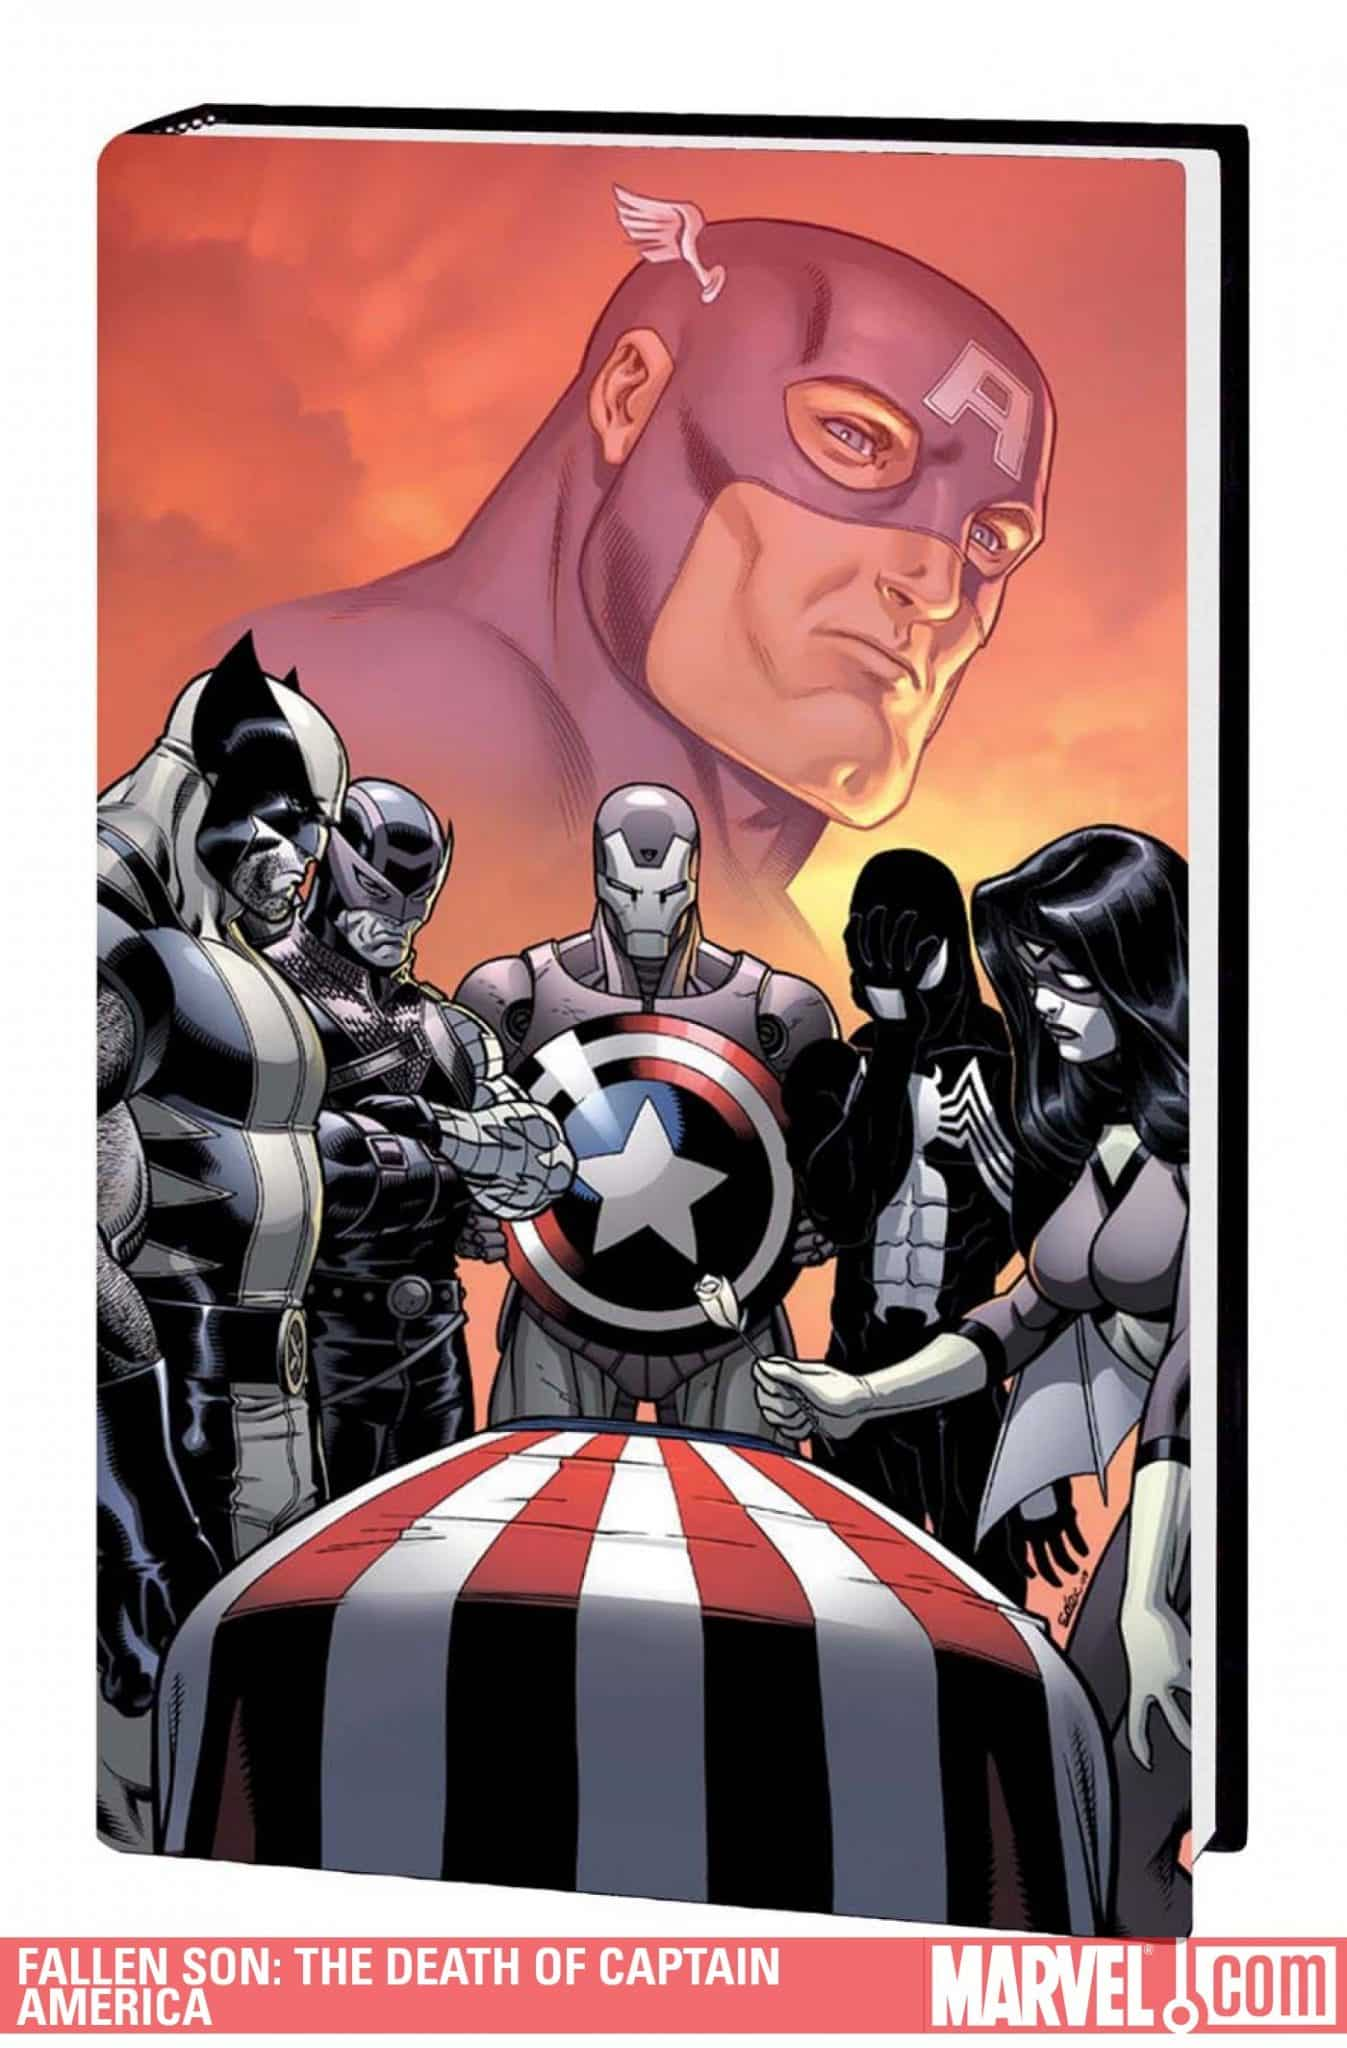 46_fallen_son__the_death_of_captain_america